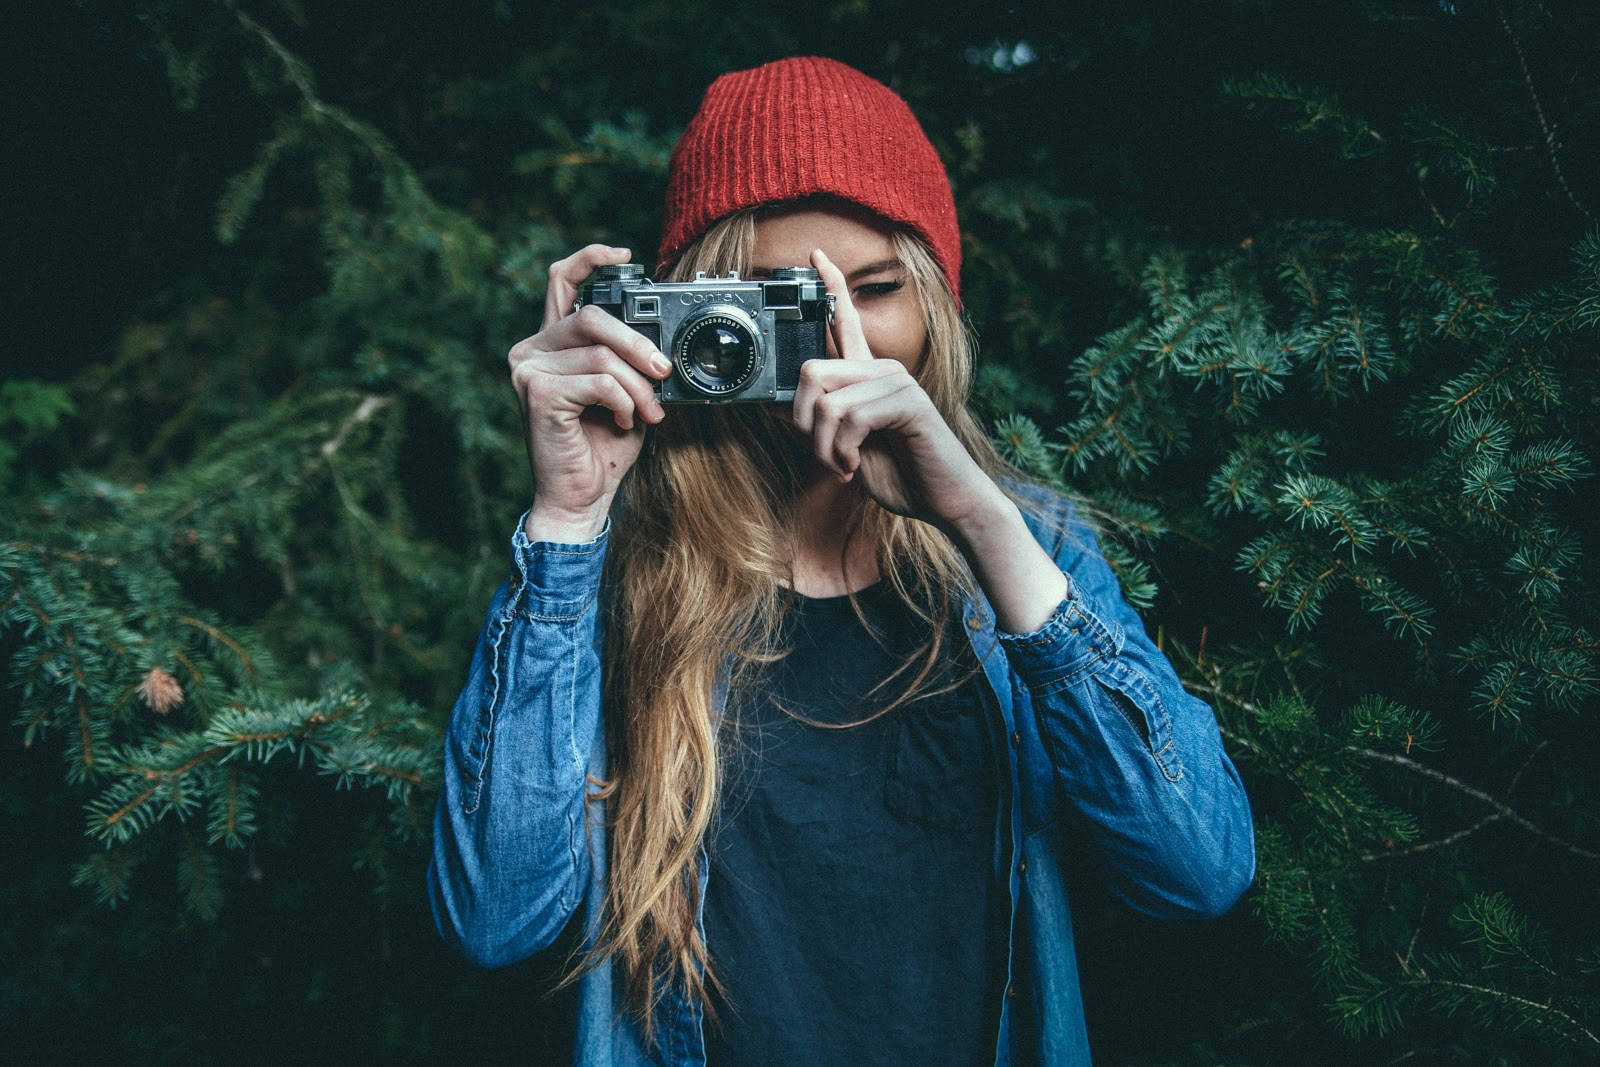 Girl wearing a denim jacket and red hat holding vintage camera with pine trees in the background.